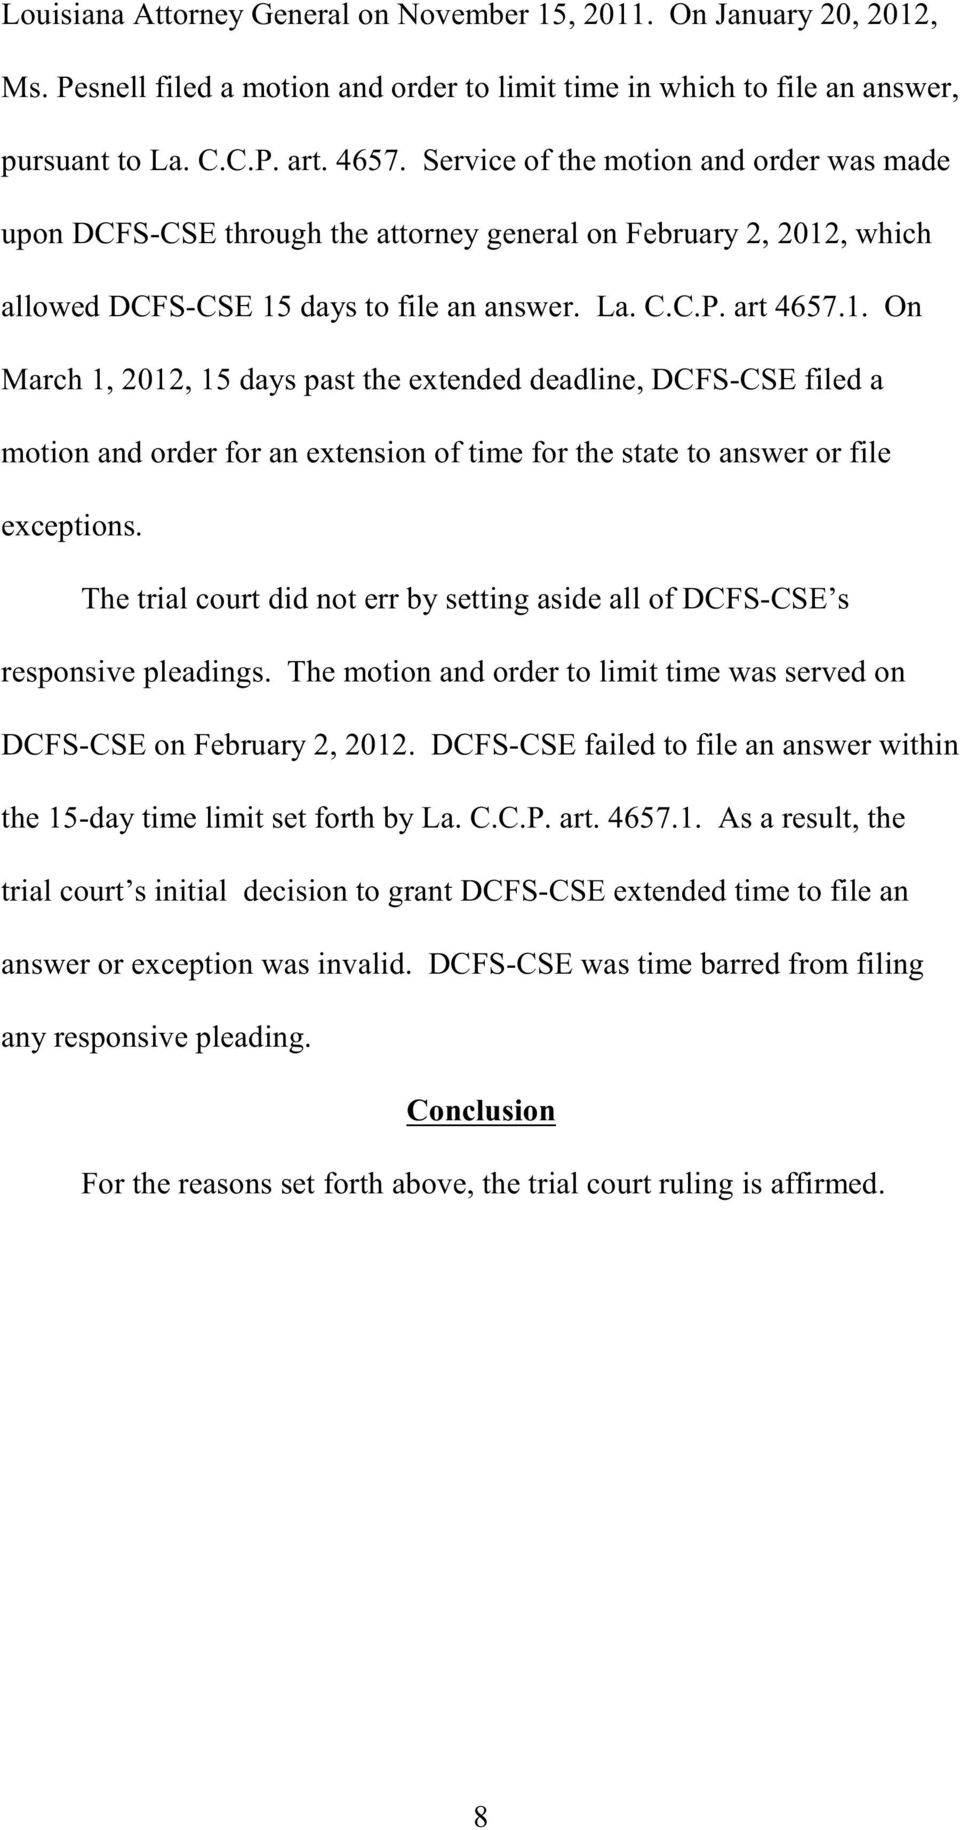 , which allowed DCFS-CSE 15 days to file an answer. La. C.C.P. art 4657.1. On March 1, 2012, 15 days past the extended deadline, DCFS-CSE filed a motion and order for an extension of time for the state to answer or file exceptions.